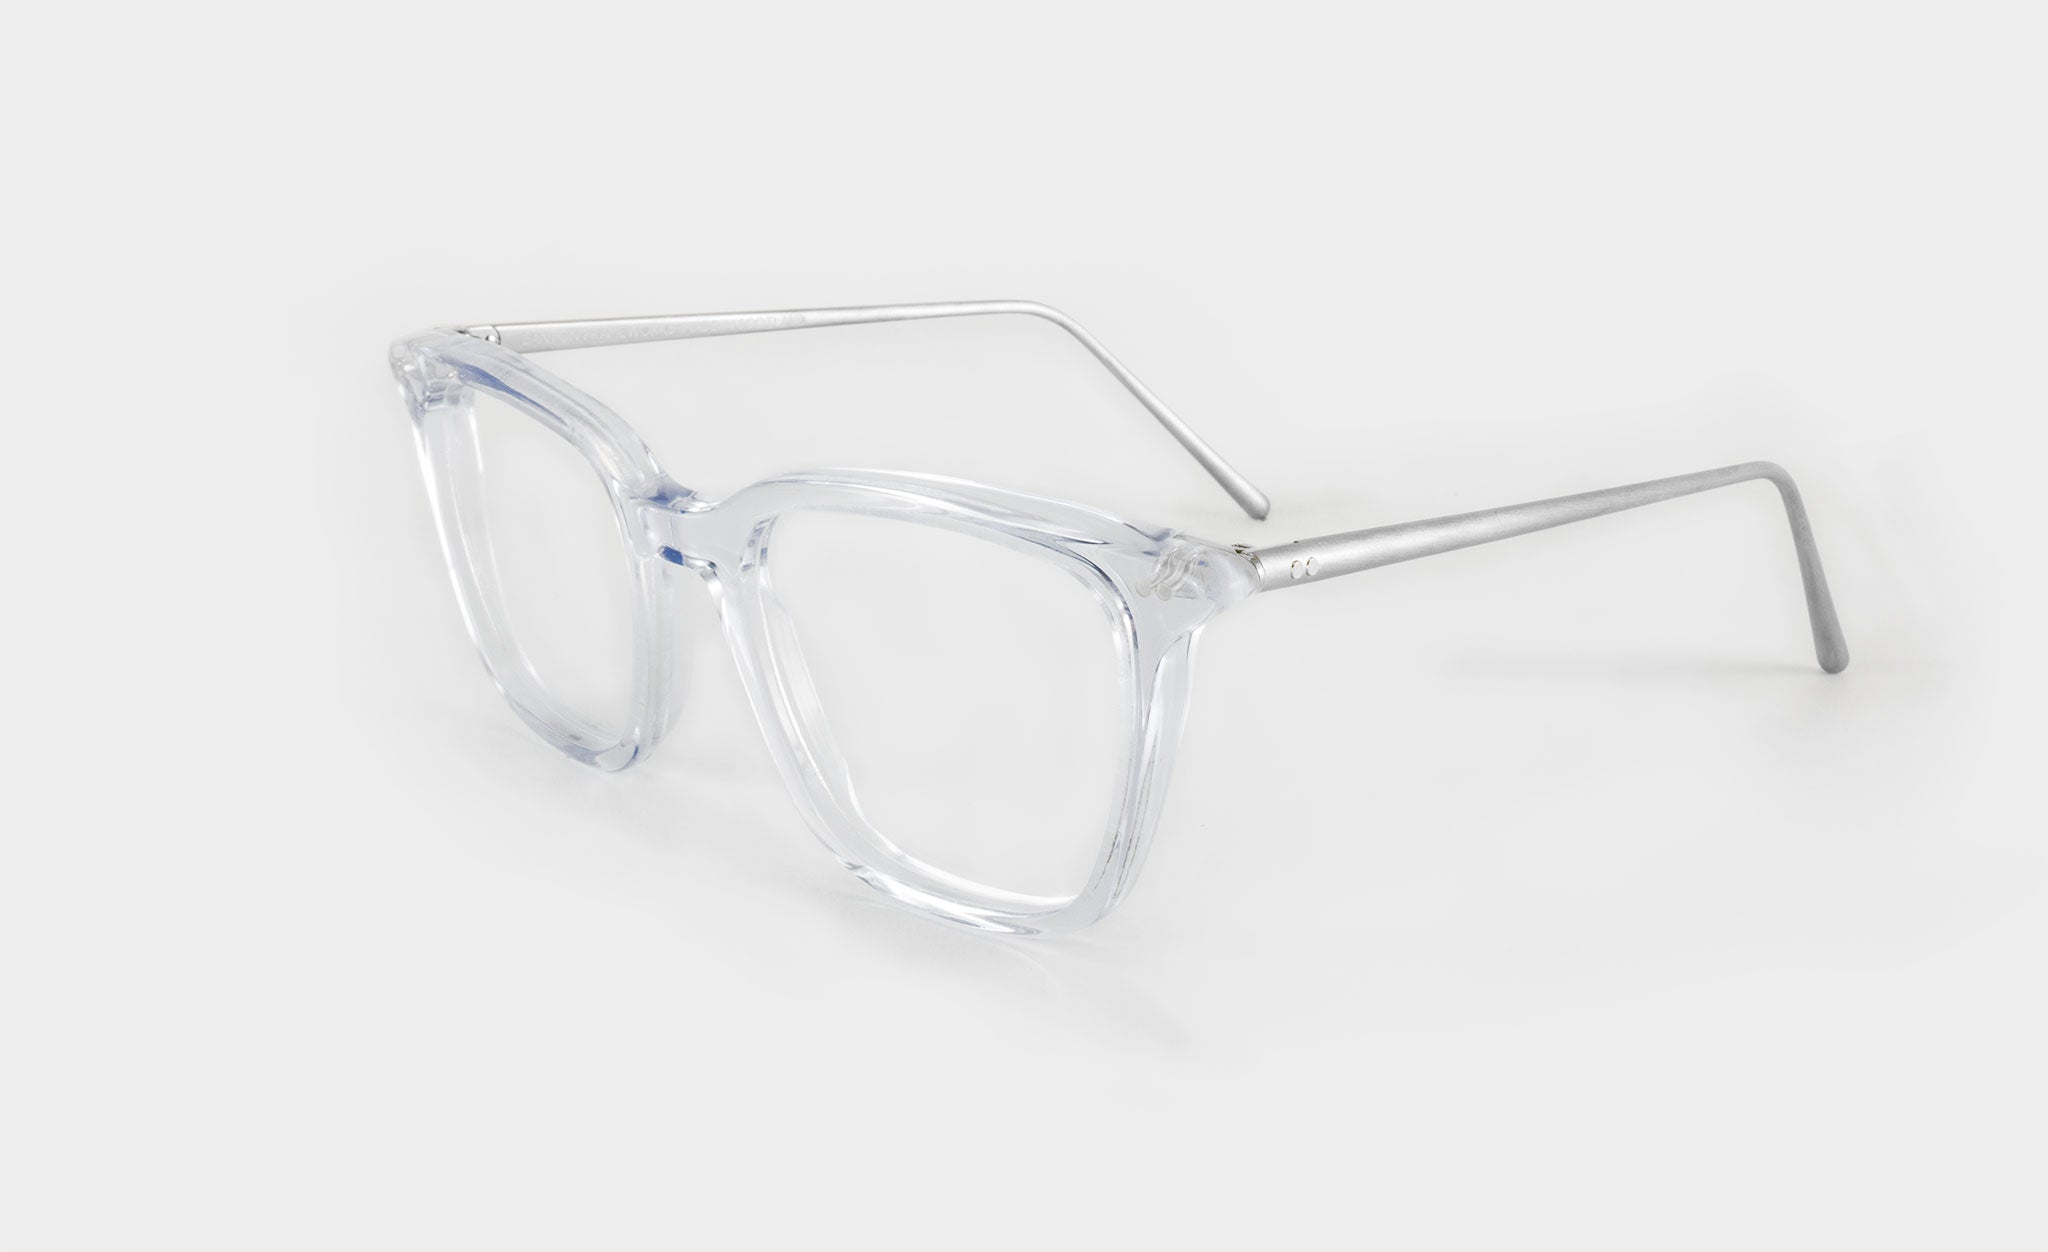 mens glasses clear frame glasses side view